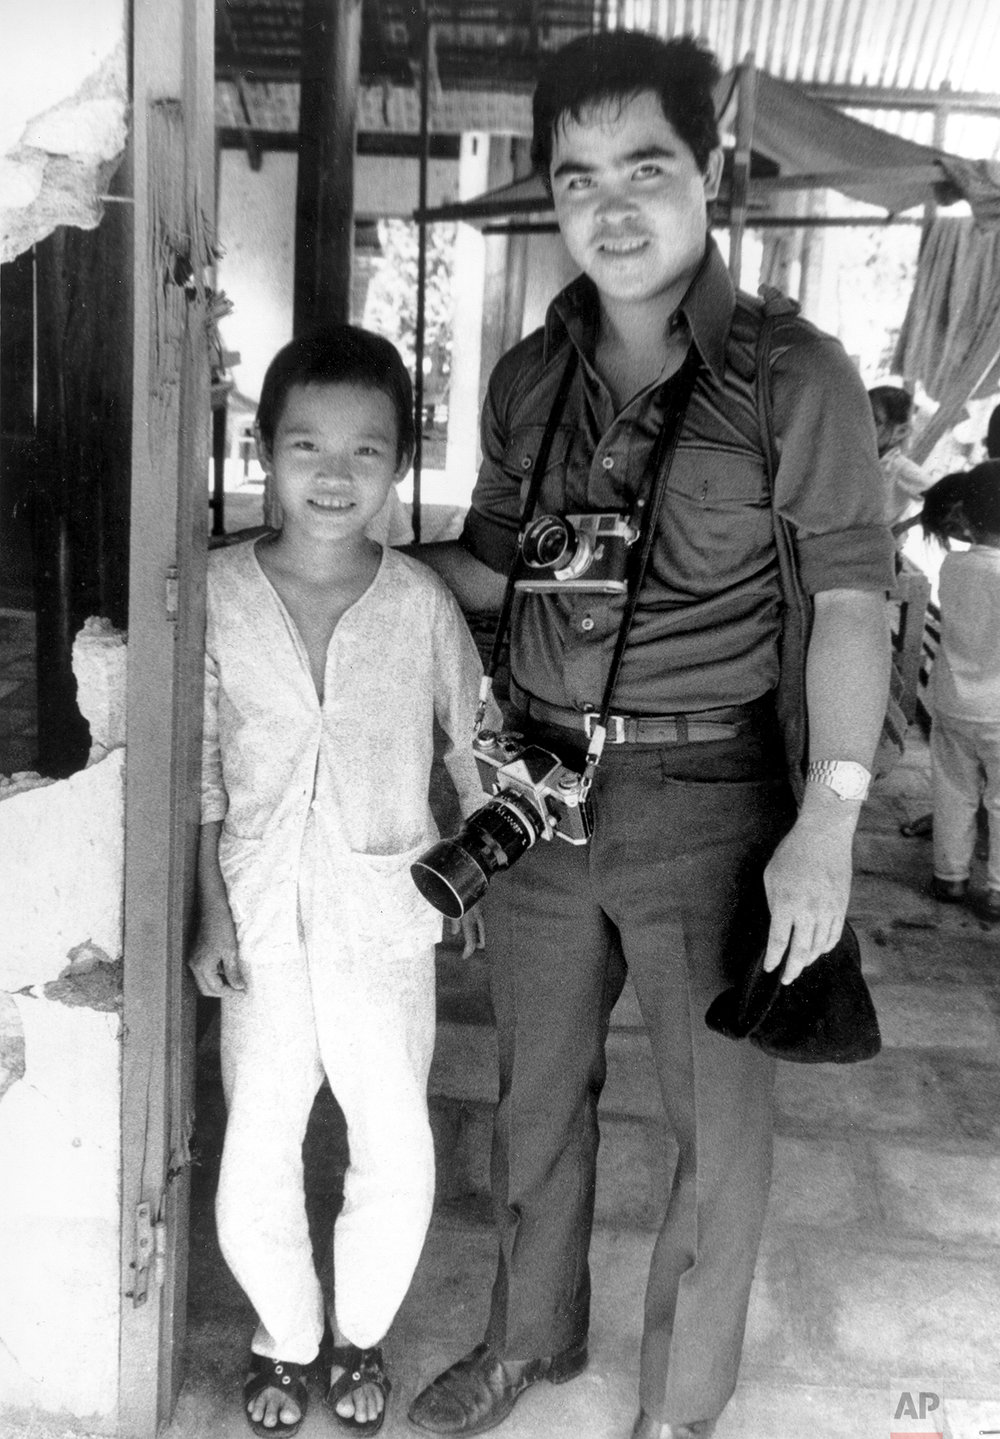 Phuc and Ut in 1973